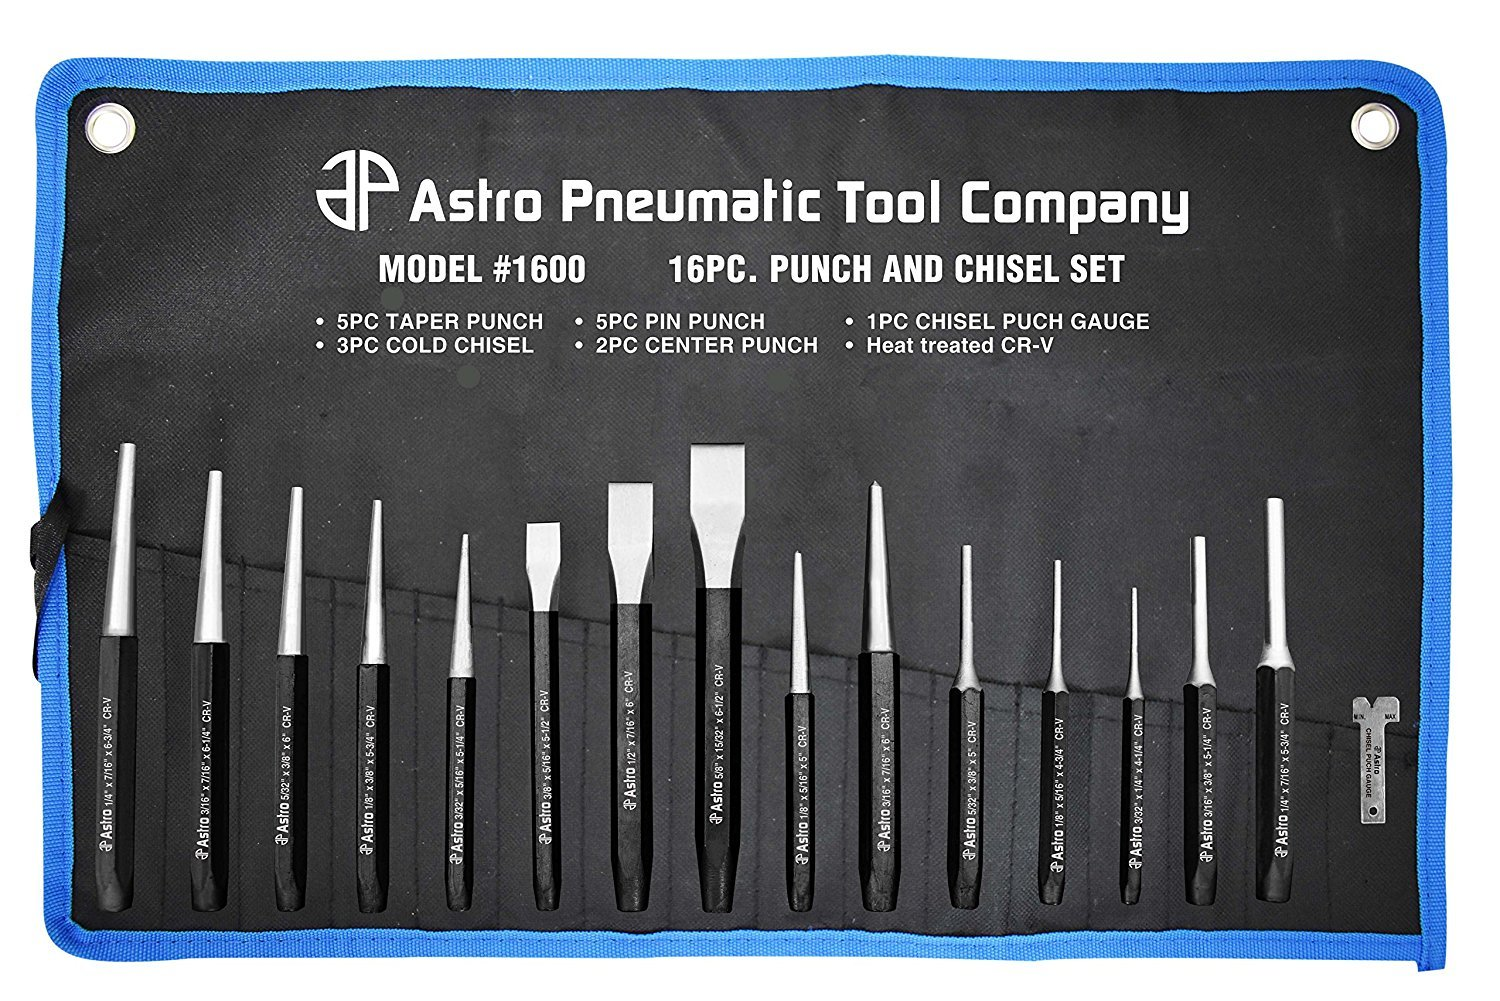 Astro Pneumatic Tool. 1600 16-Piece Punch and Chisel Set (Limited Edition)